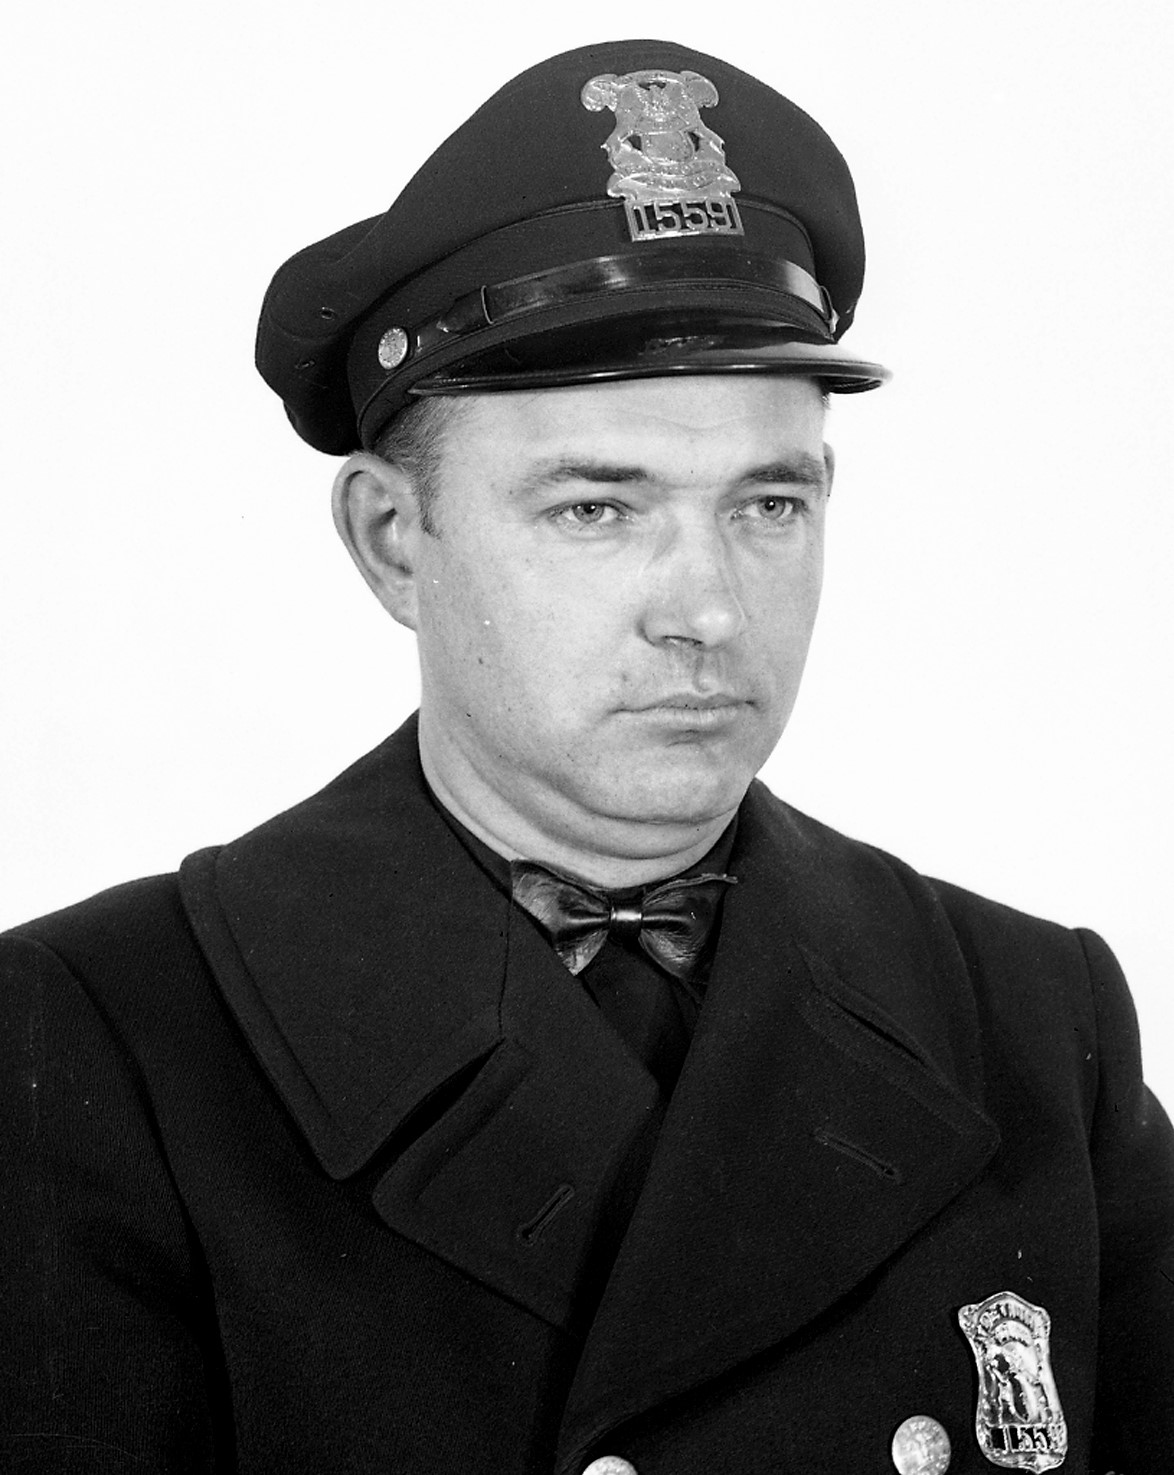 Police Officer Arthur E. Meyers | Detroit Police Department, Michigan